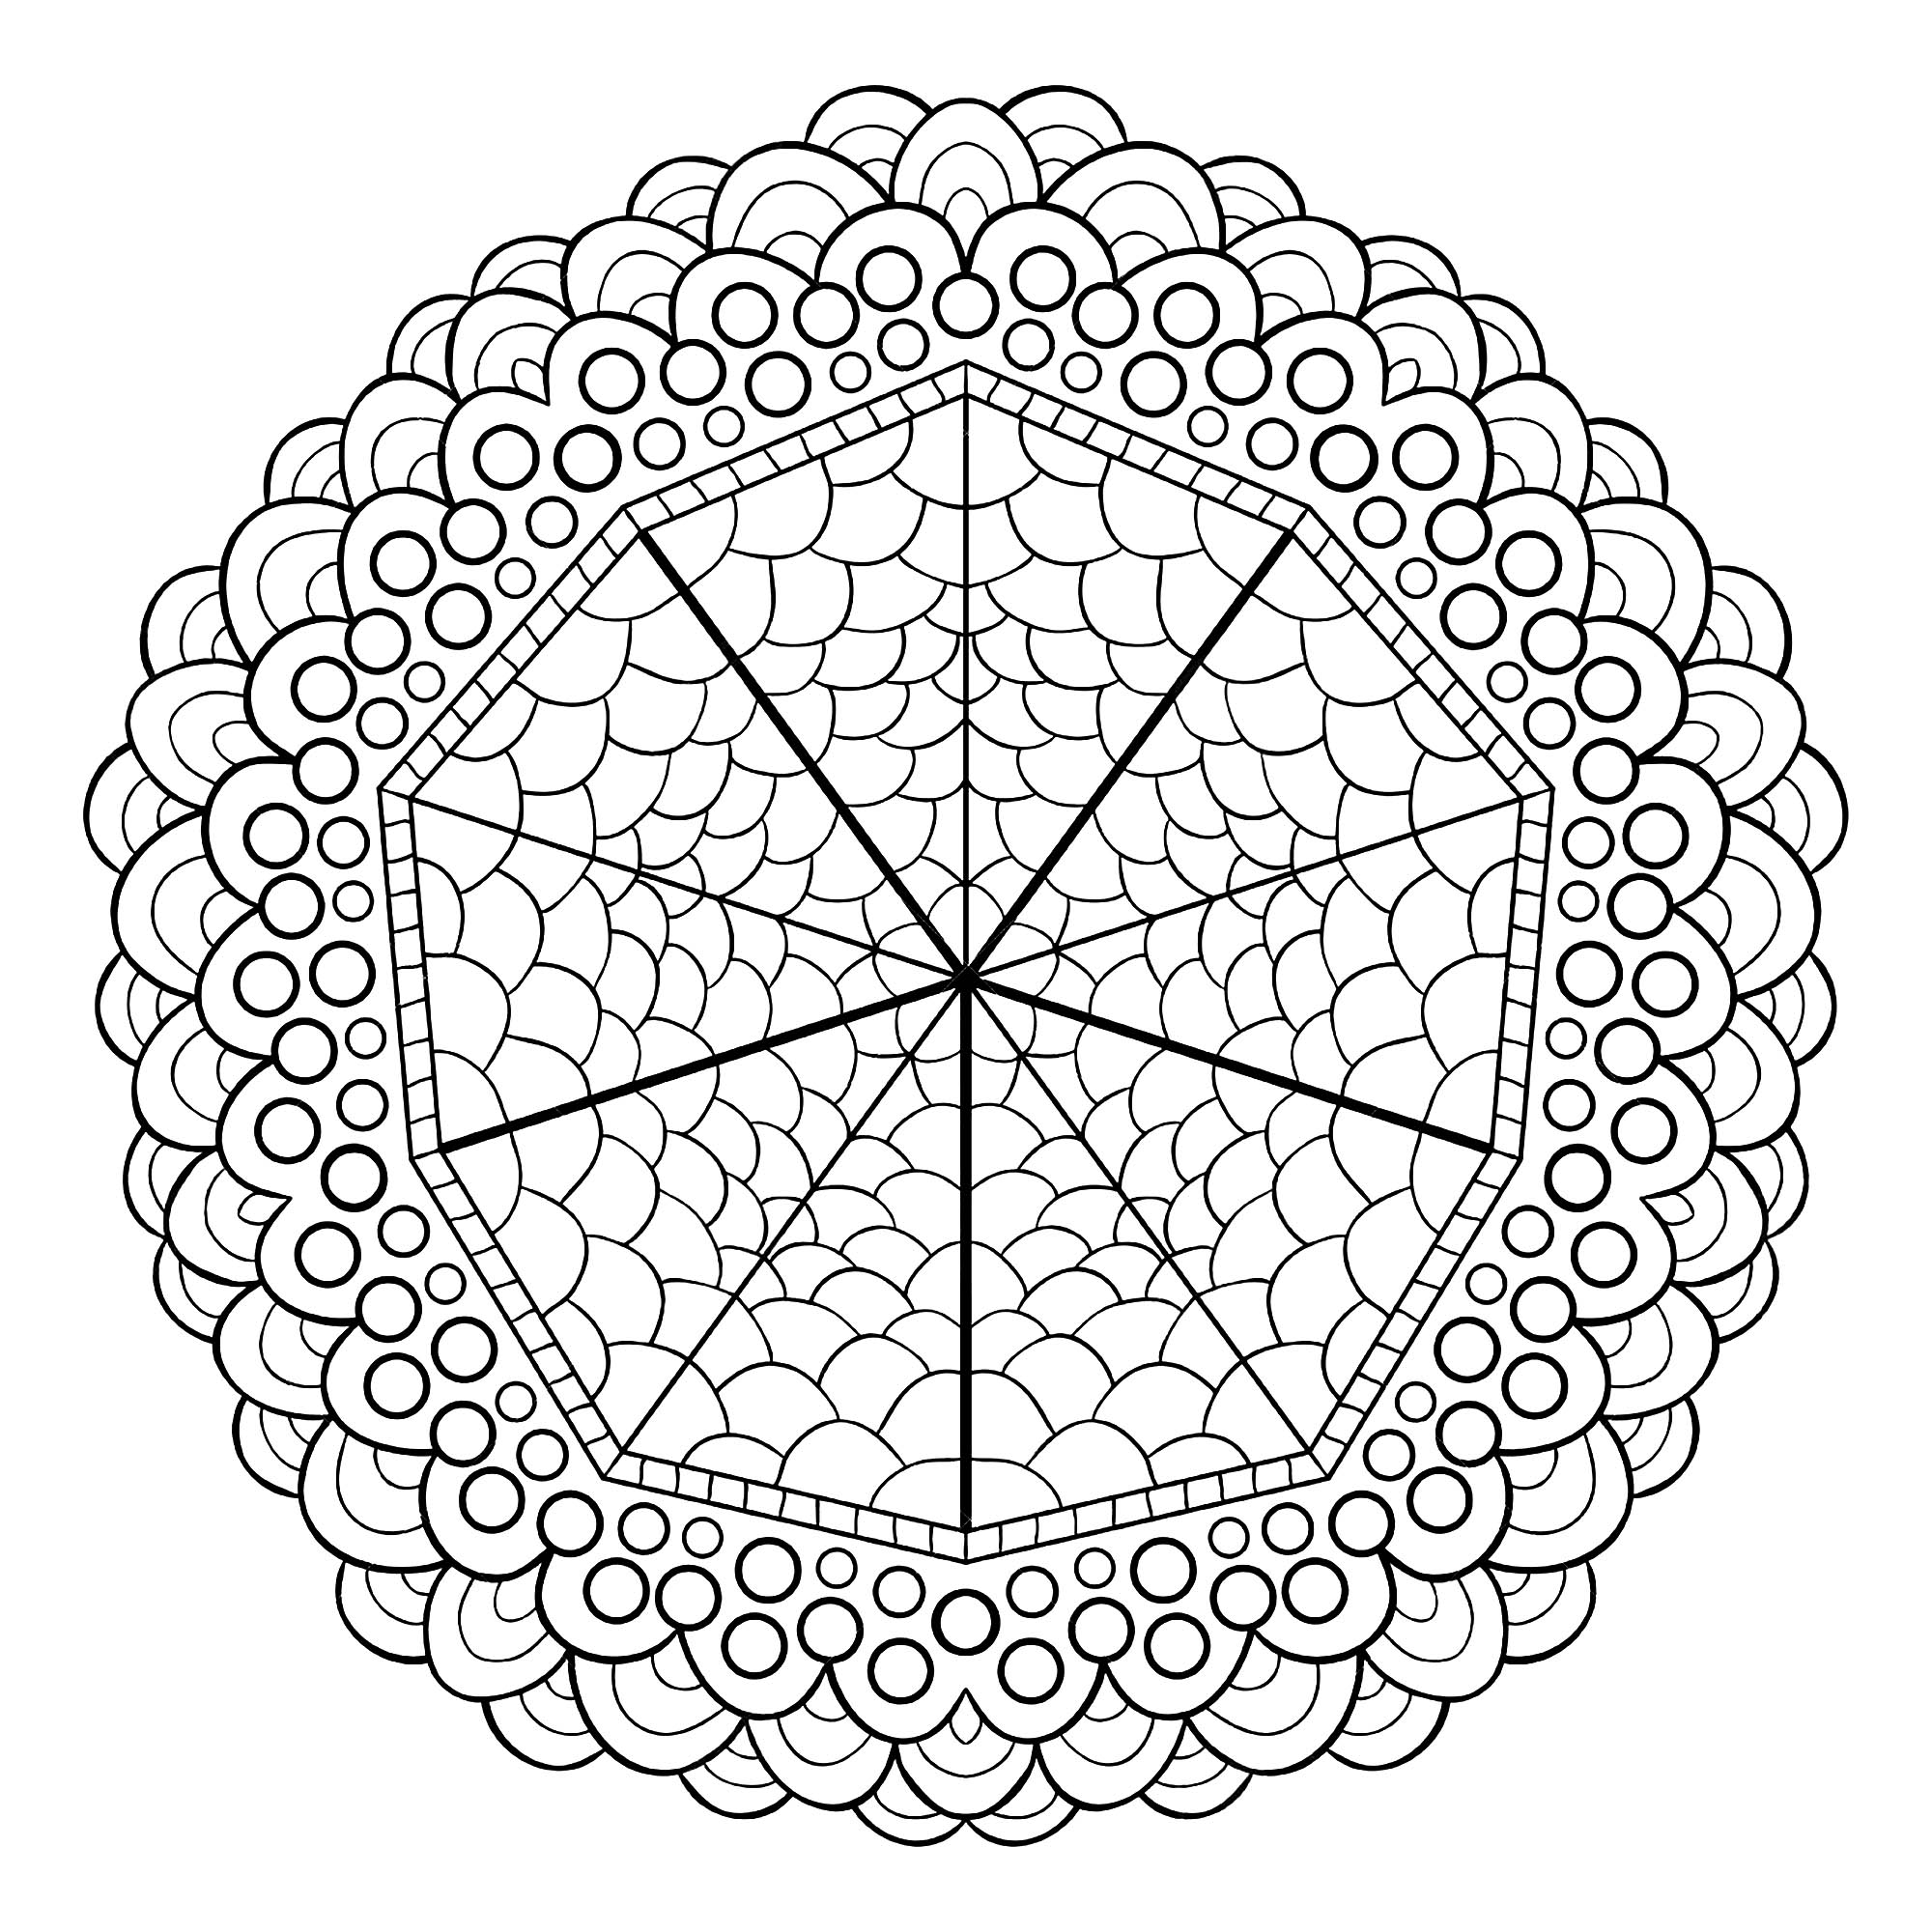 Unique mandala design - Mandalas Adult Coloring Pages